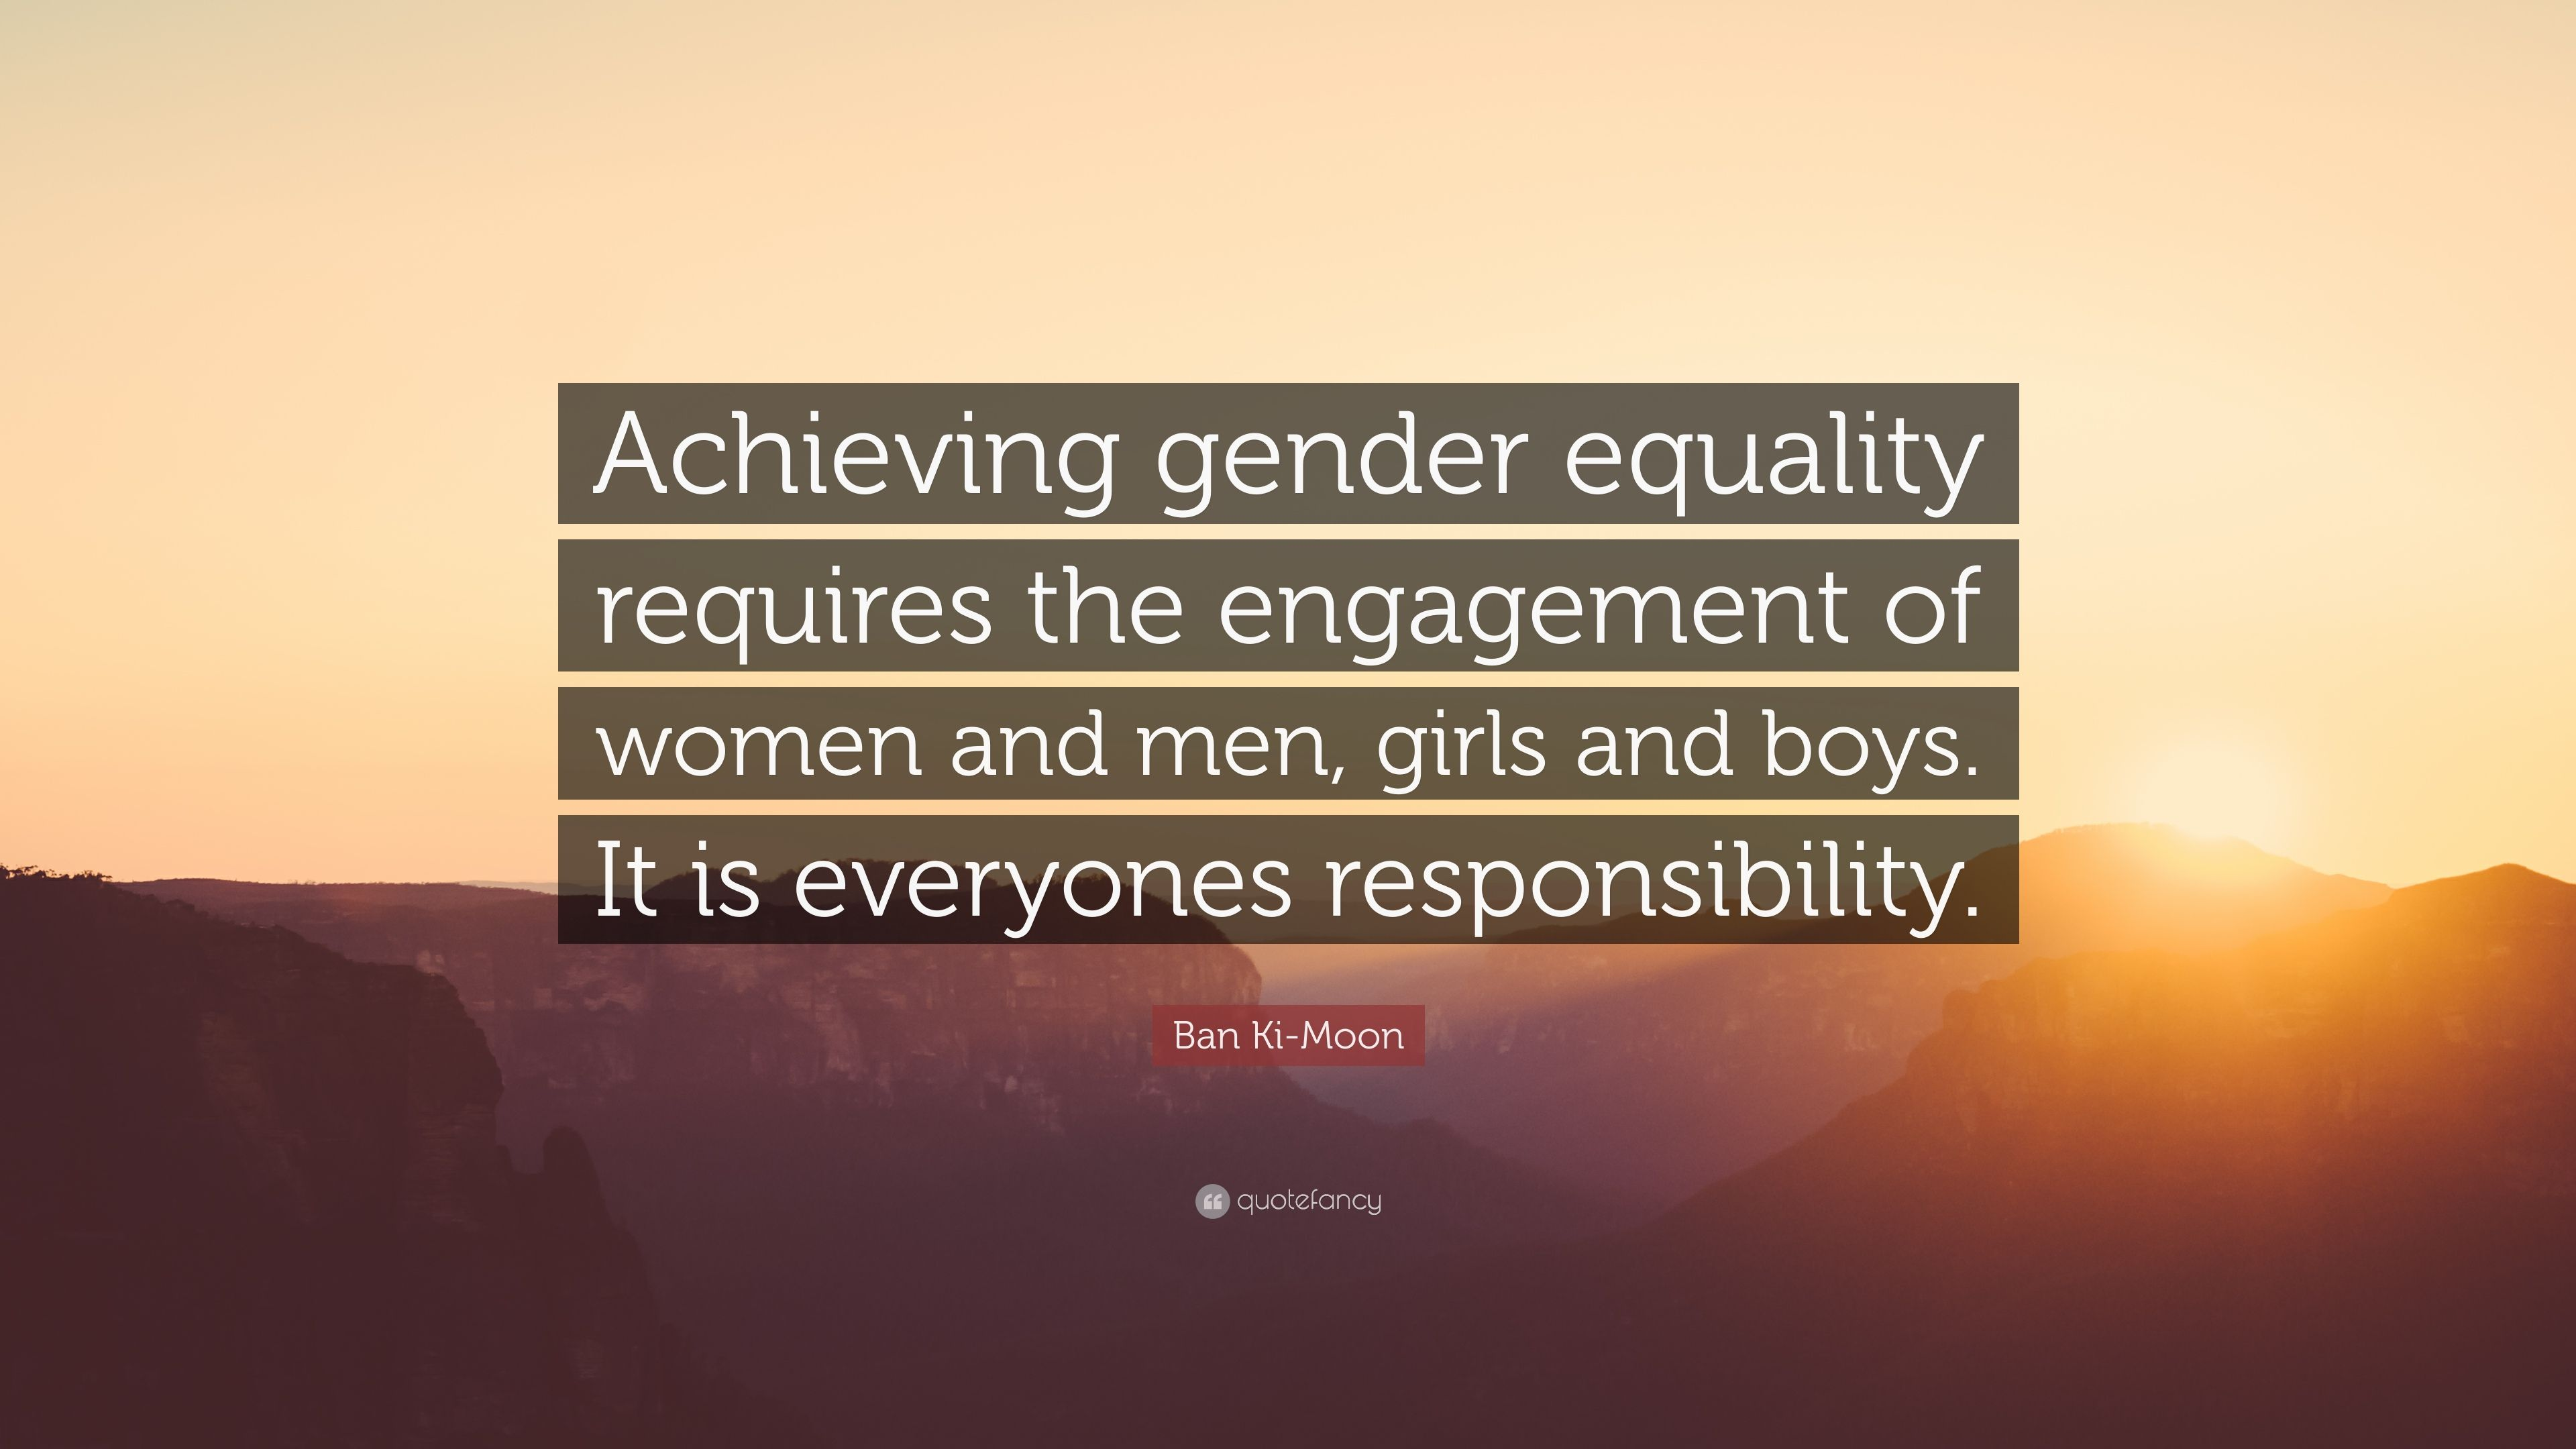 Pin By Super Mum On Women Equality Quotes Equality Quotes Gender Equality Quotes Equality